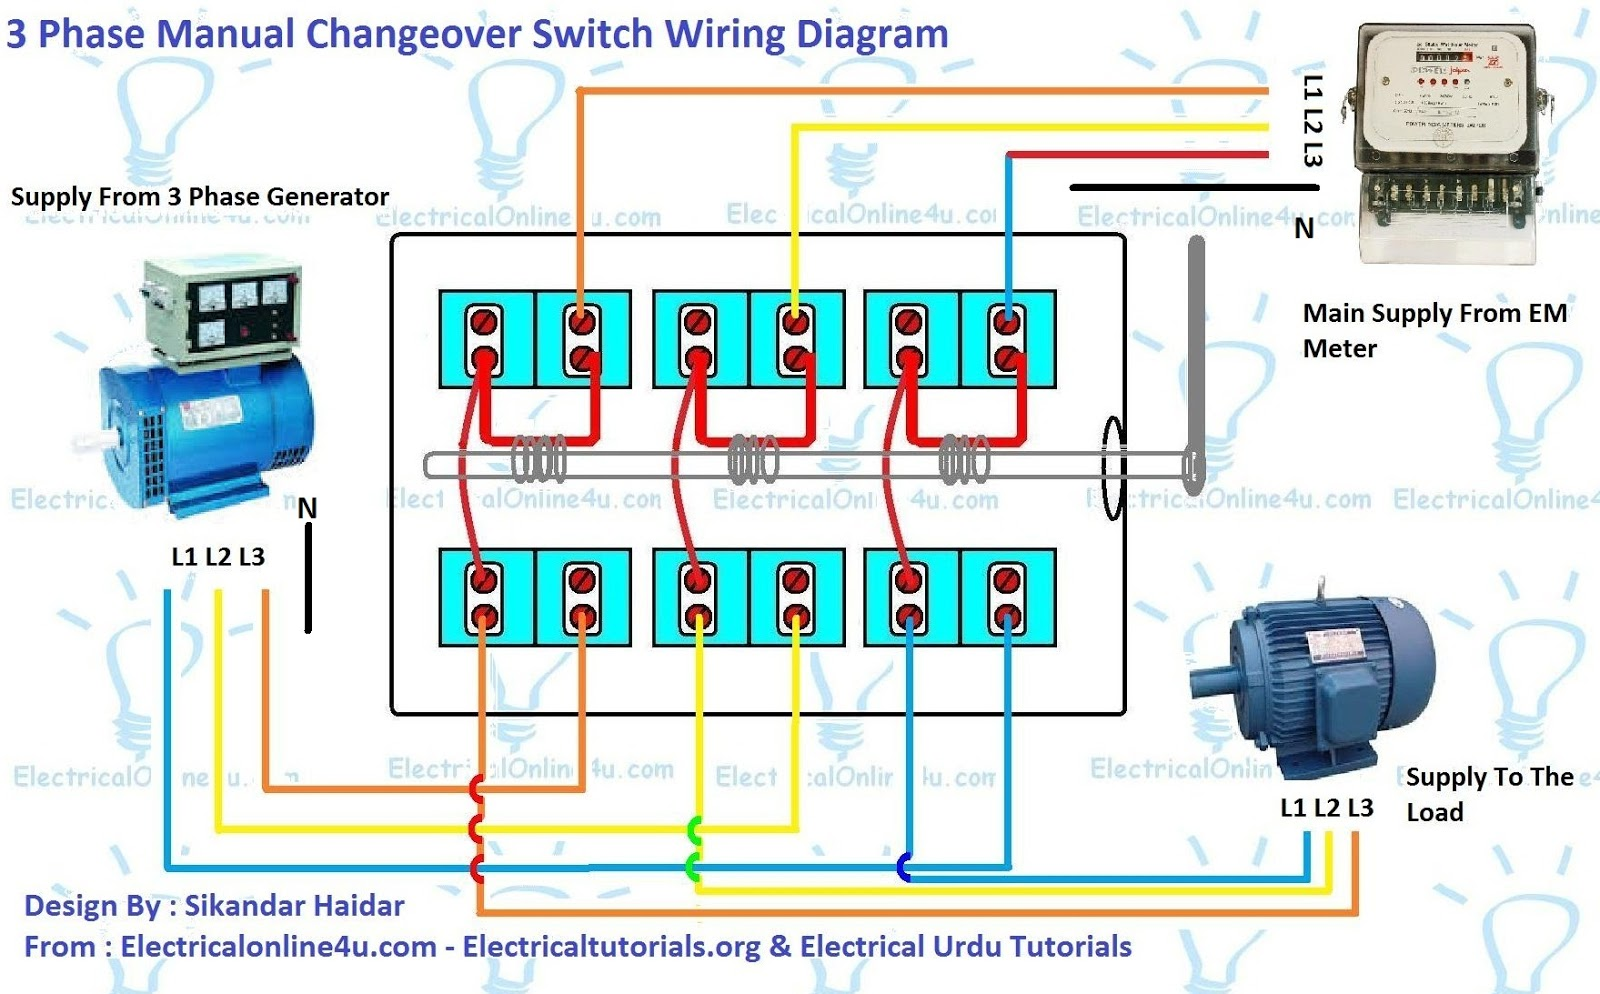 How To Wire A Generator Transfer Switch Diagram Wiring Position Make Pareto 3 Phase Manual Changeover For